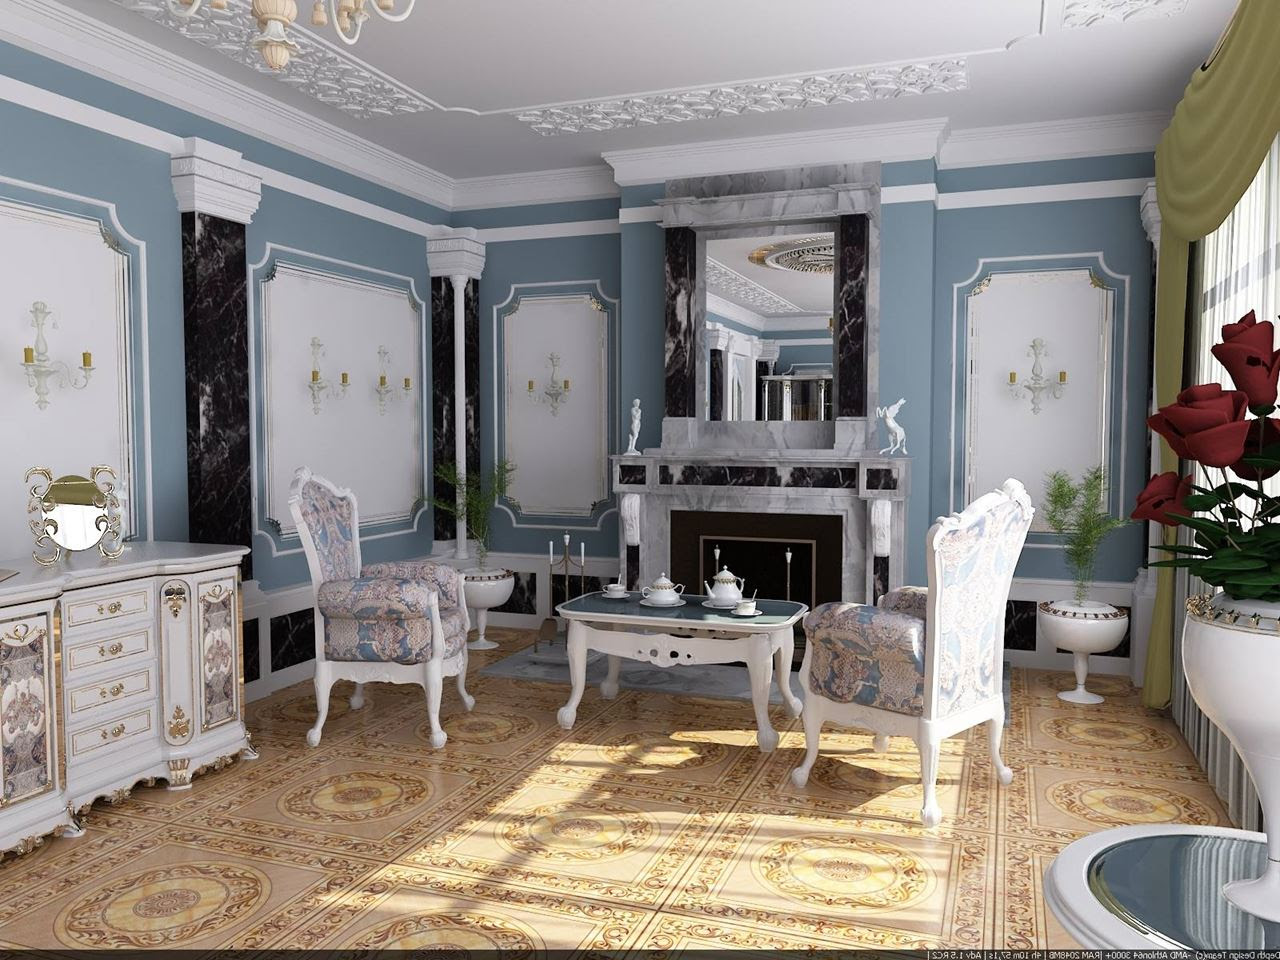 New Living Room Furniture Styles - ARCH.DSGN